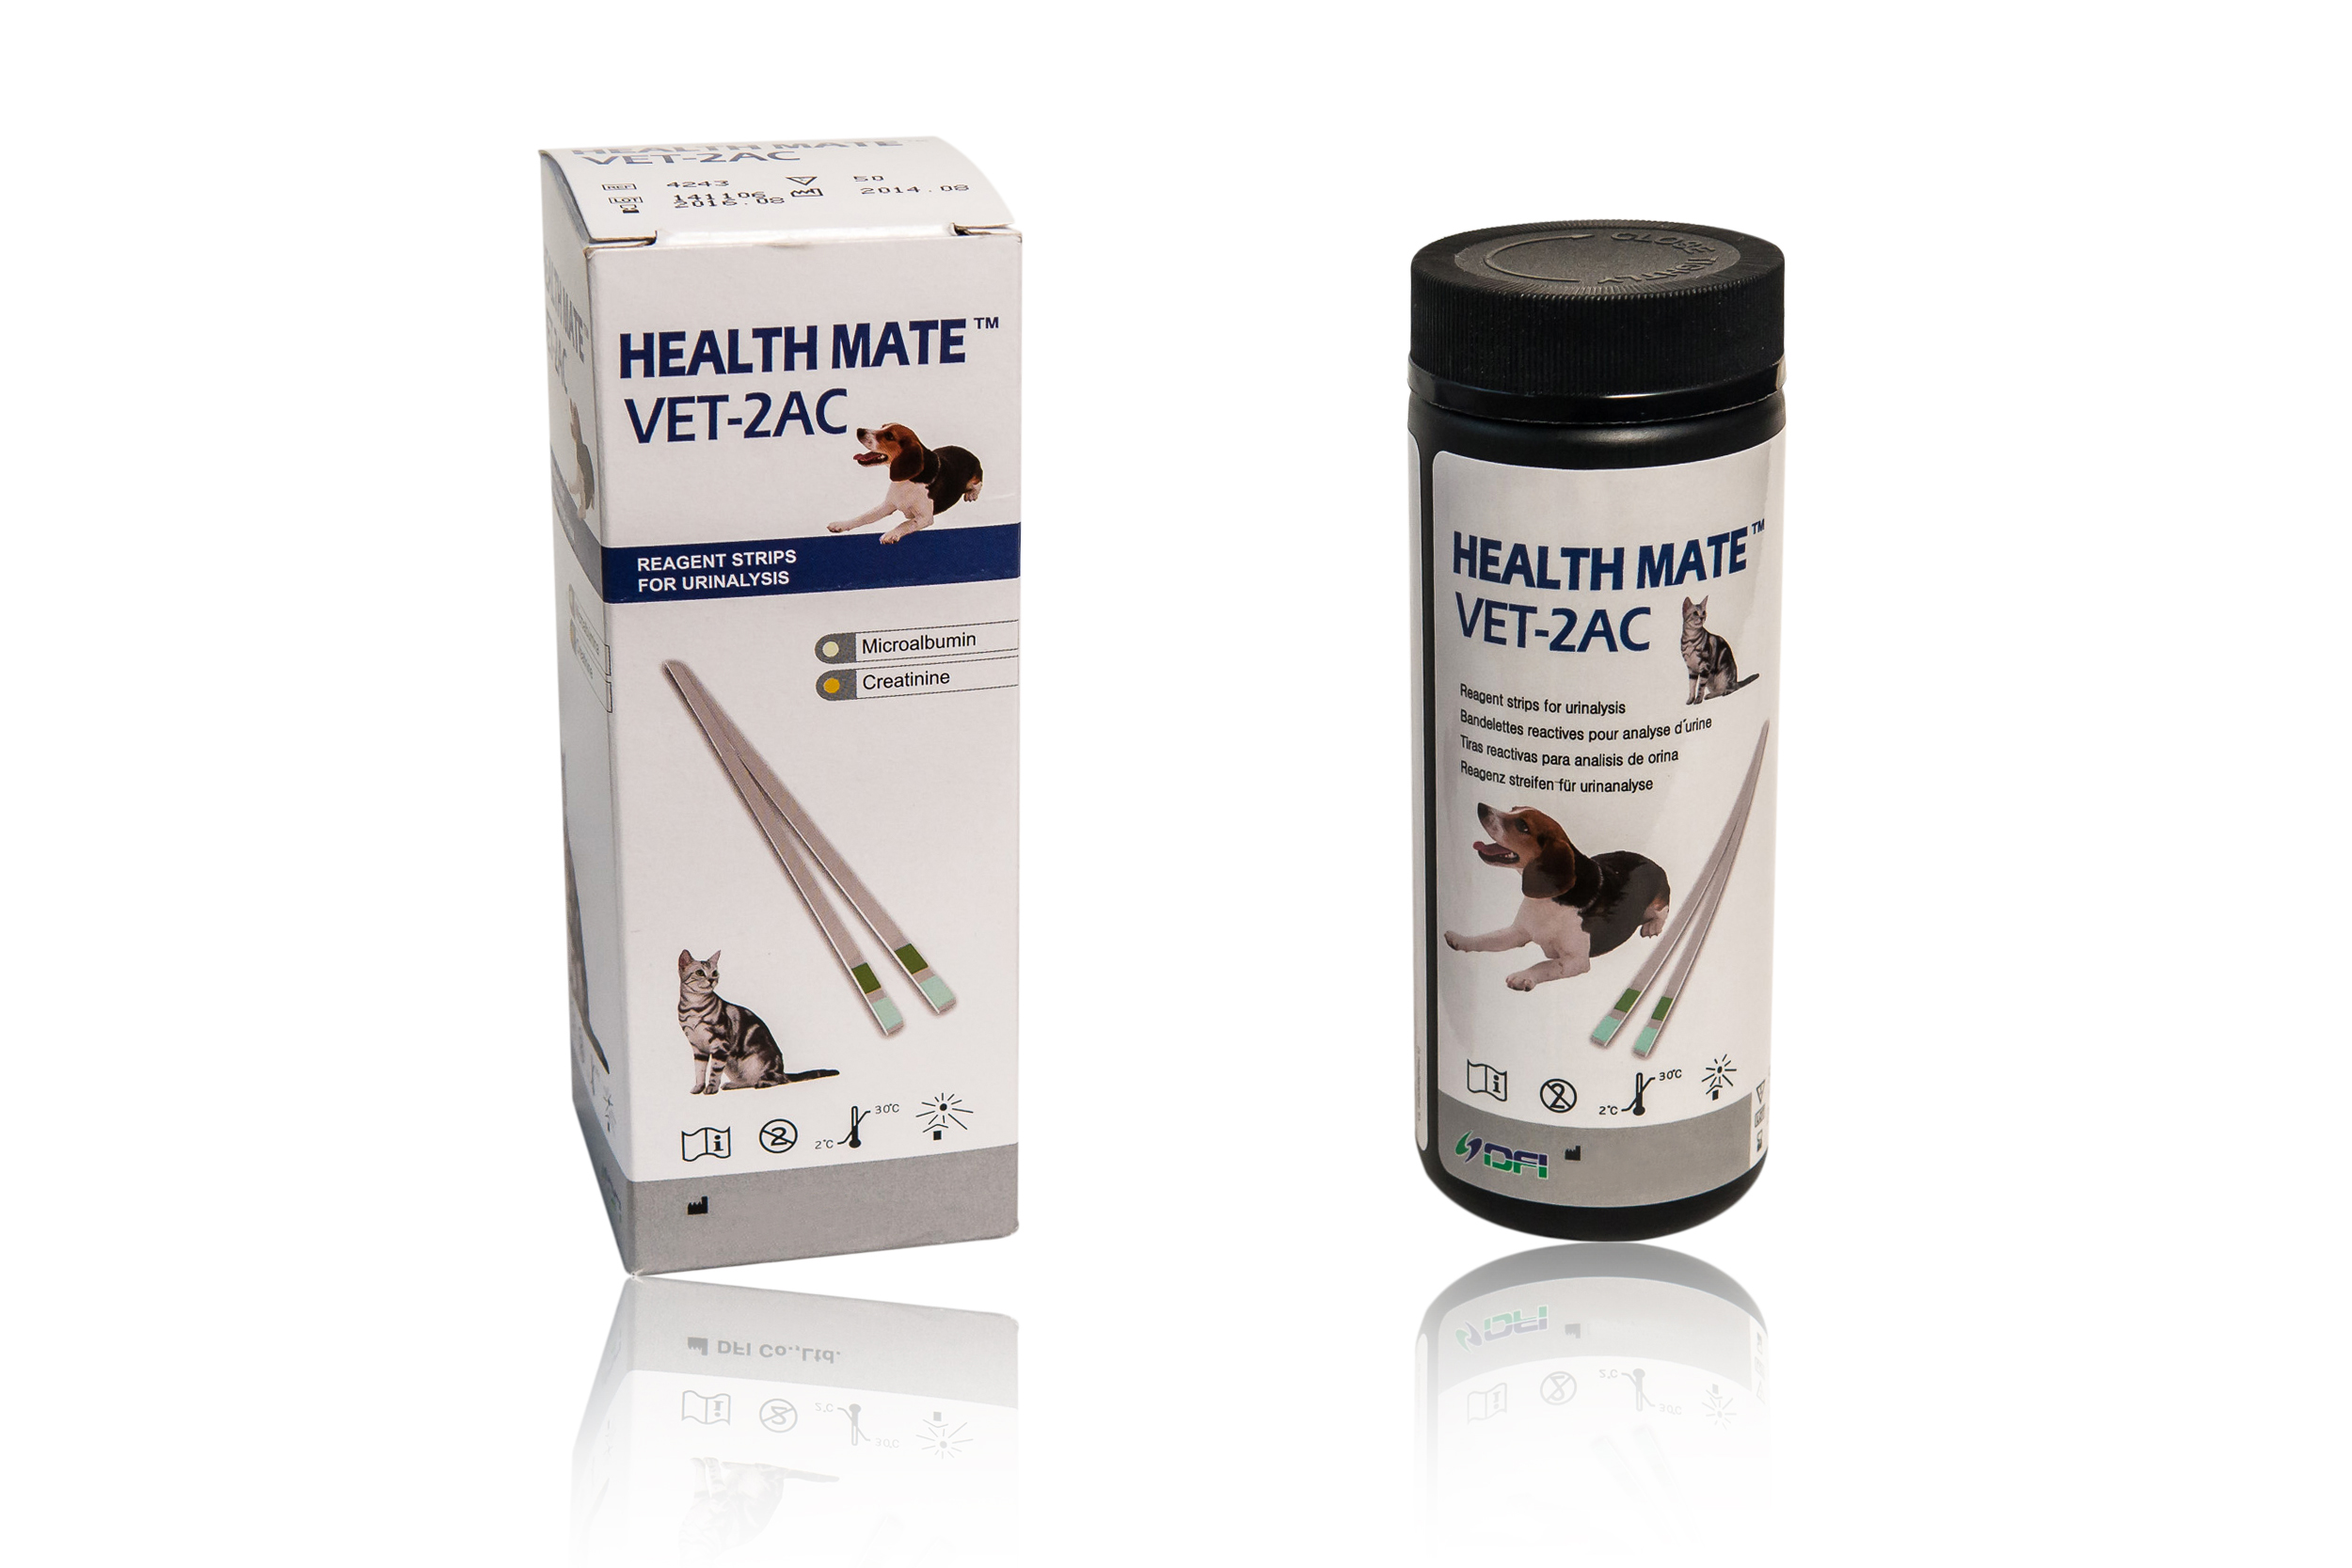 The HEALTH MATE™ VET-2AC is a two parameter urine test that allows for frequent and quicker testing, than waiting for lab results. Shelf life once opened: 6 Months Reading time: 60 seconds